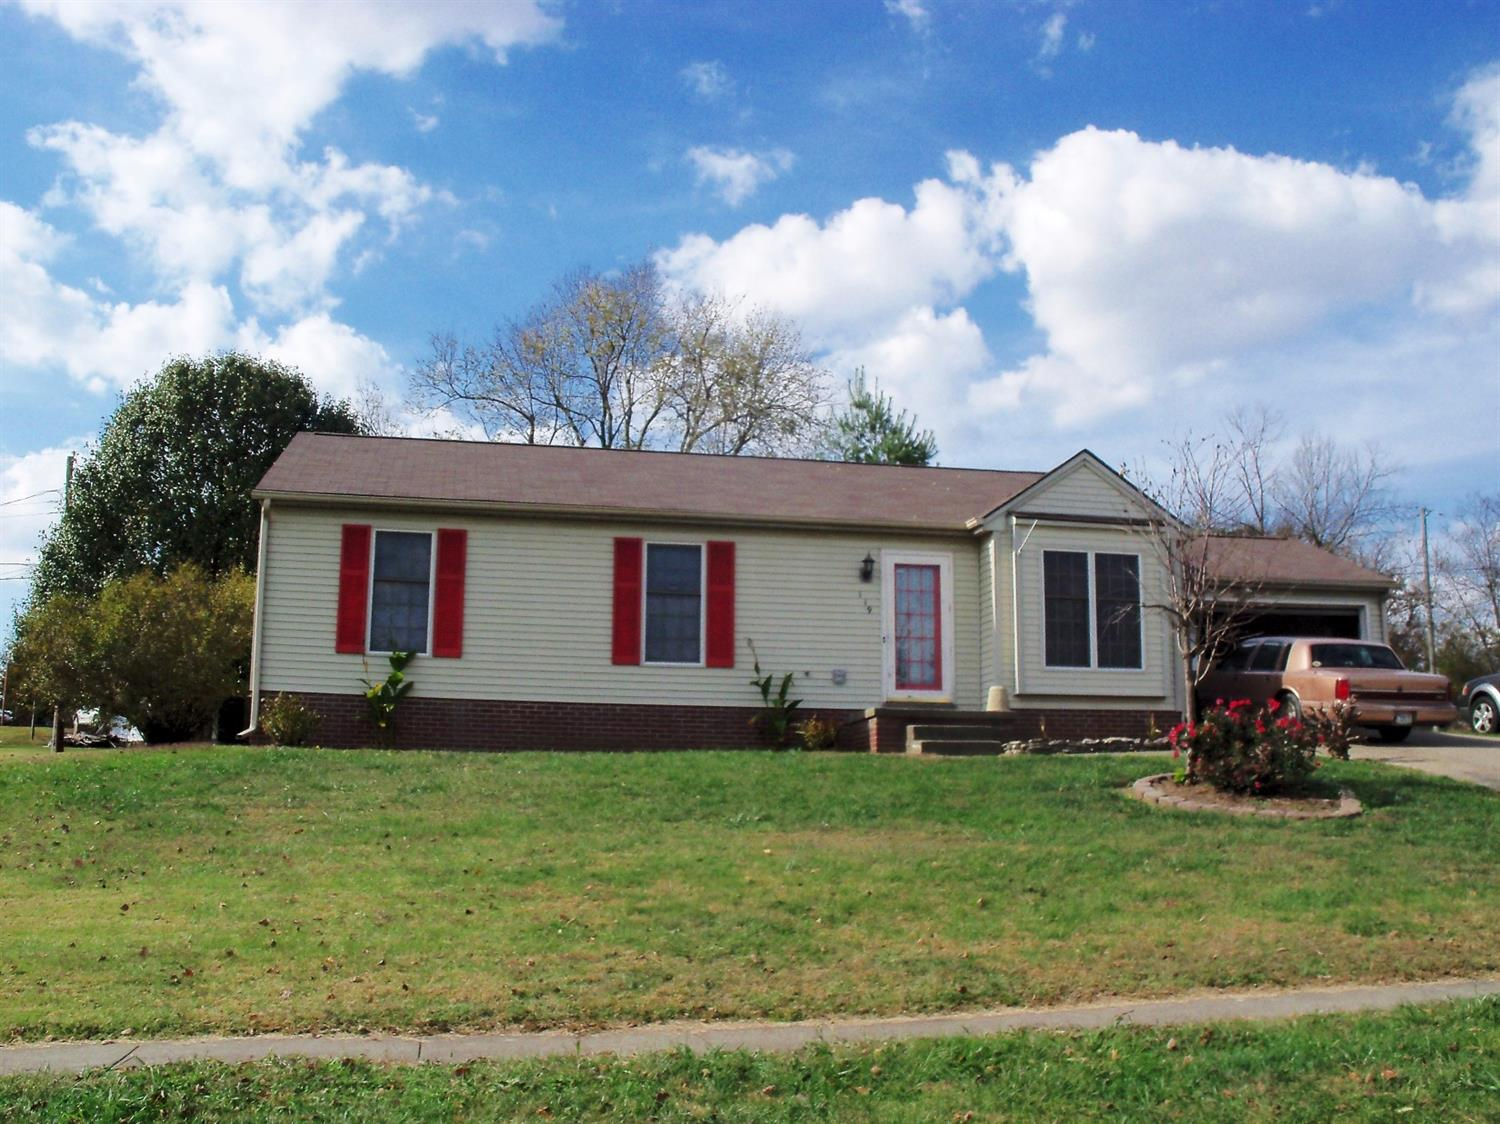 Home For Sale at 238 N Third St, Danville, KY 40422